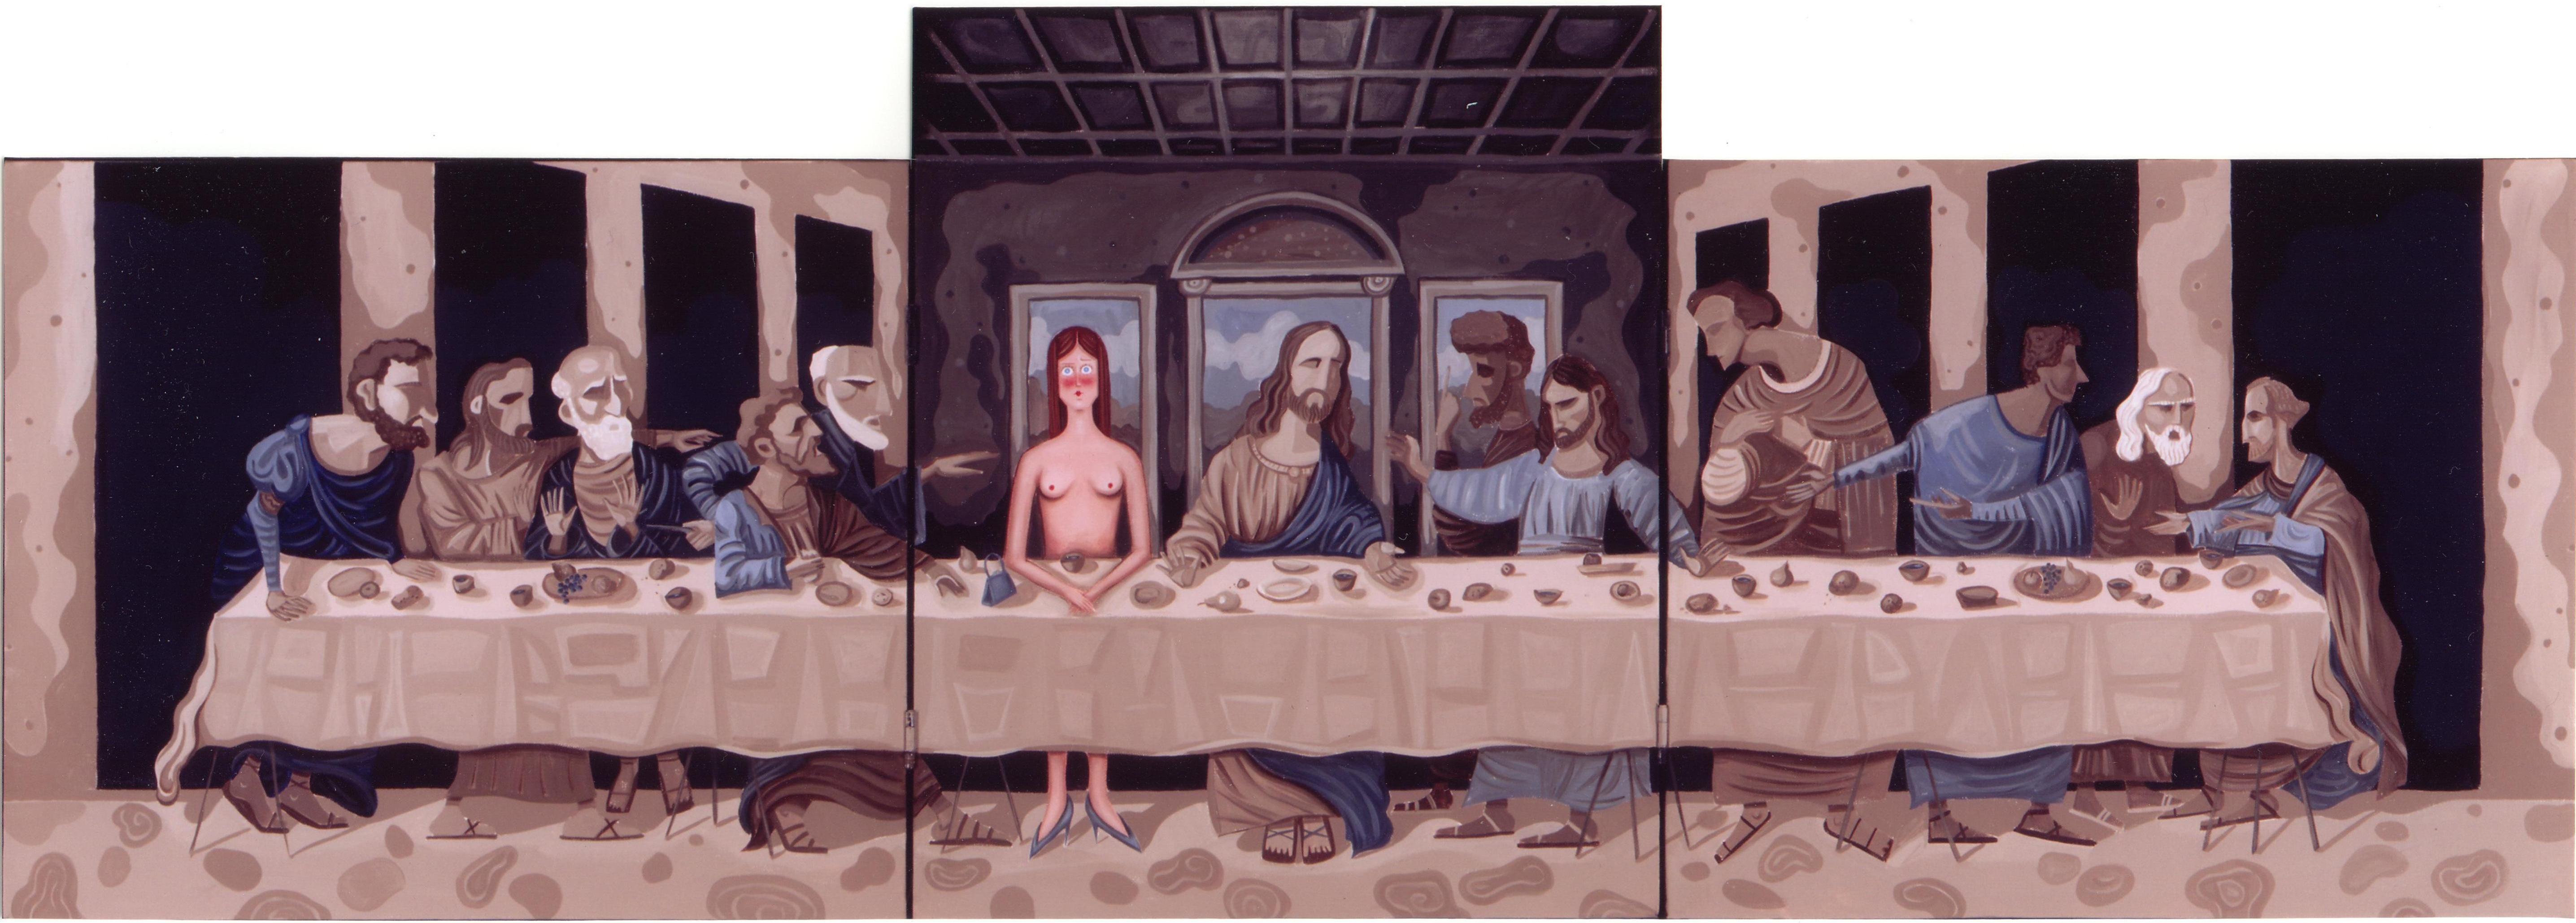 Naked at the Last Supper